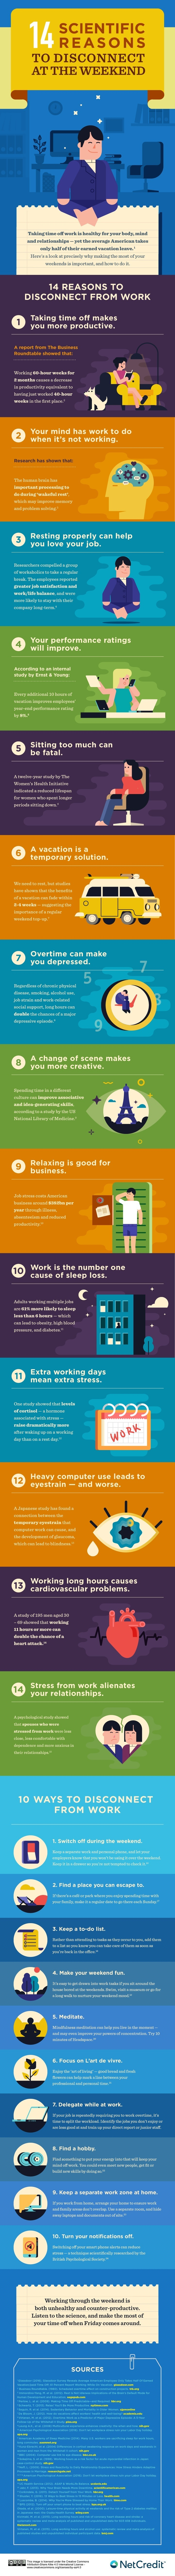 Why You Shouldn't Work on Weekends Infographic